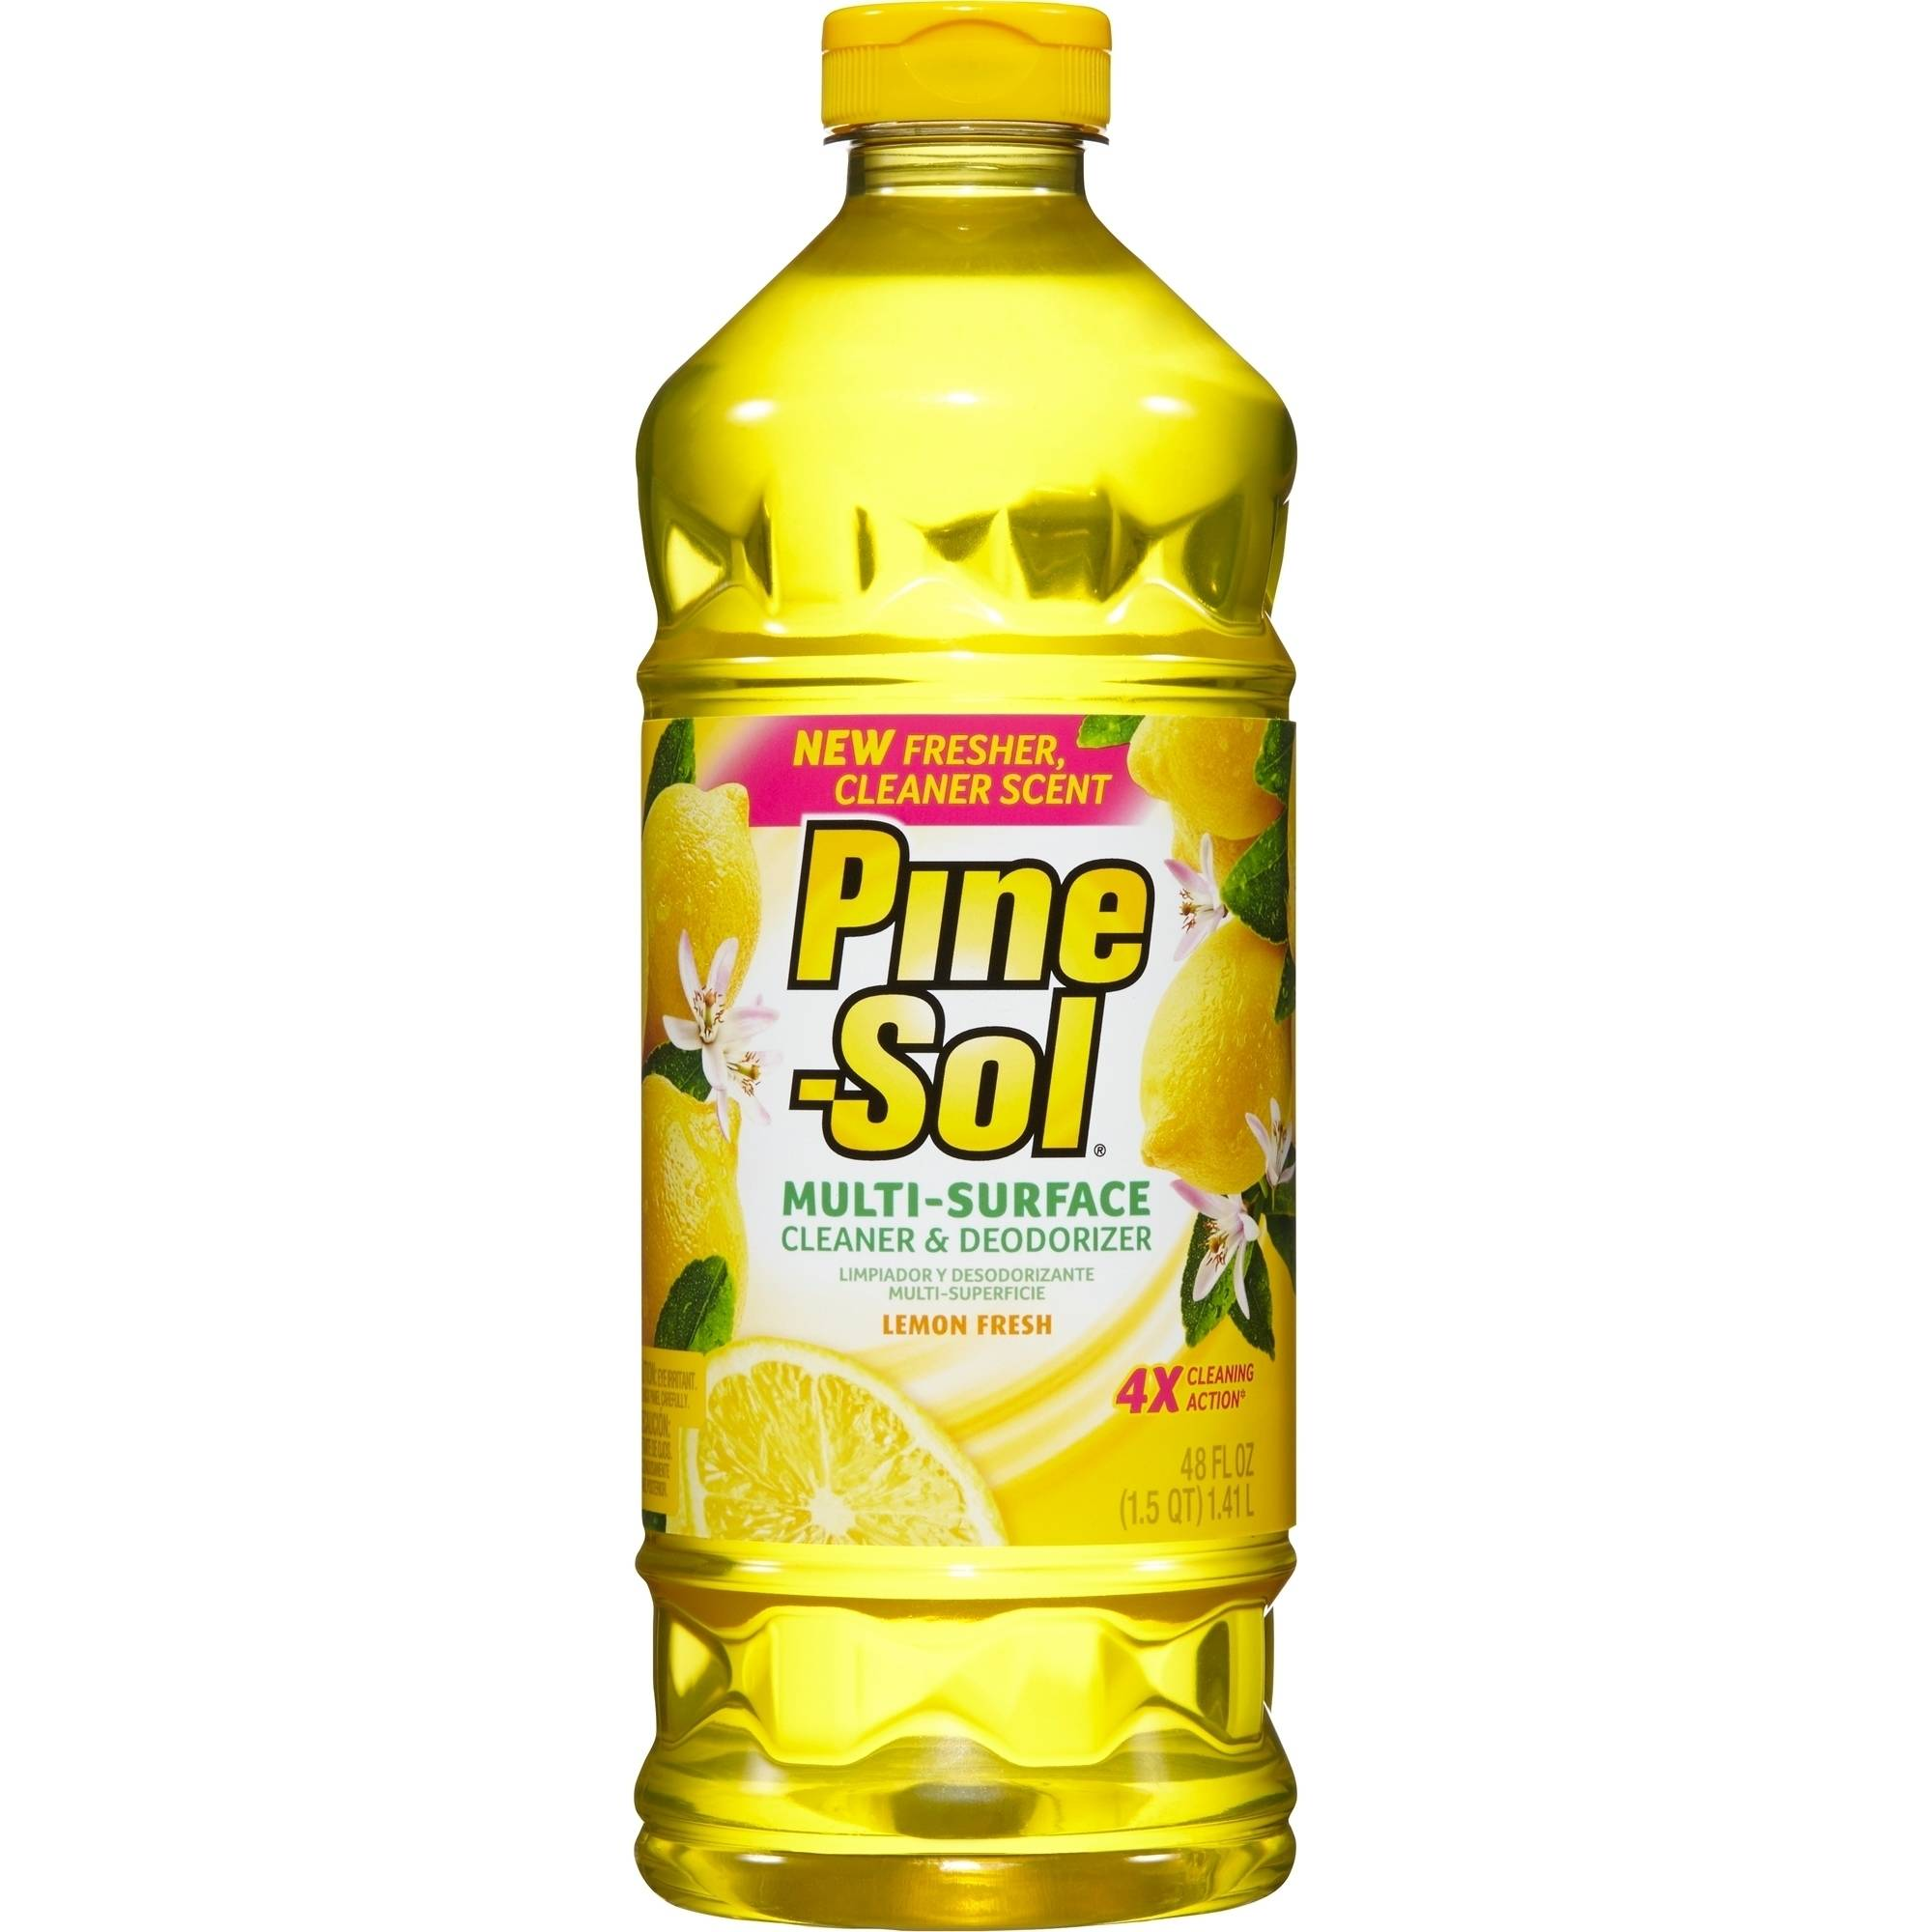 Pine-Sol Multi-Surface Cleaner, Lemon Fresh, 48 Fluid Ounce Bottle